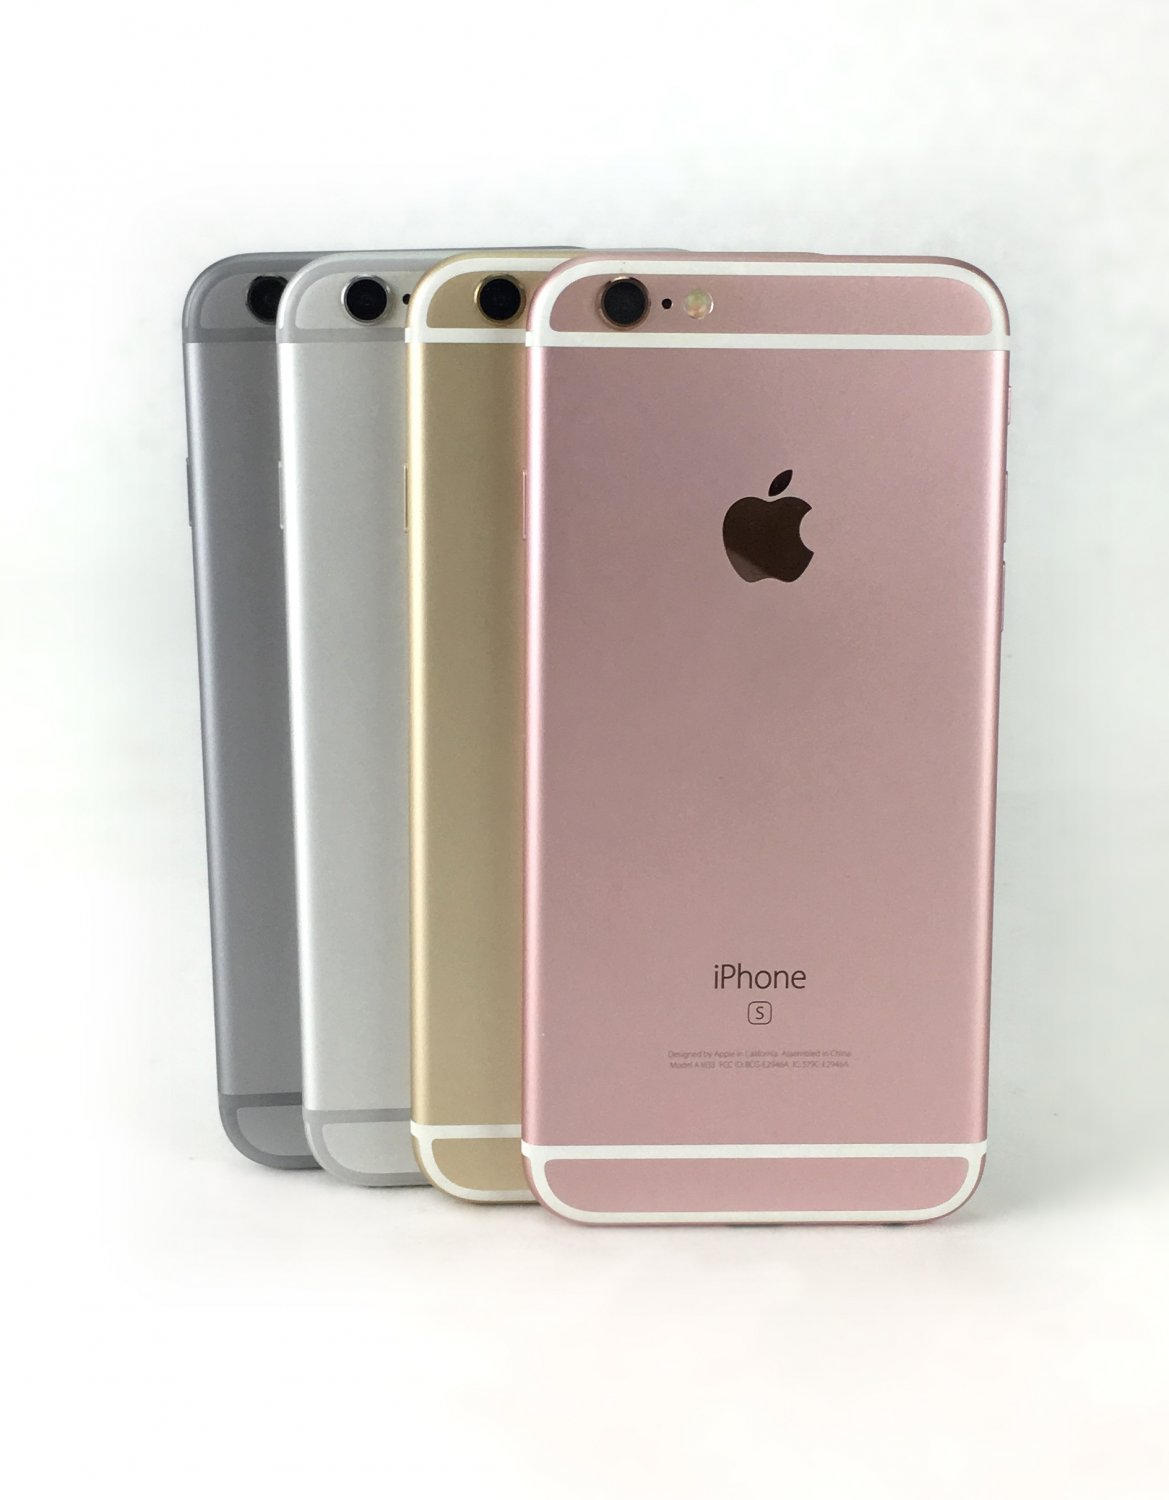 Apple AT&T IPhone 6s 16/64/128 GB - Gray/Gold/Silver/Rose Gold - (Excellent)